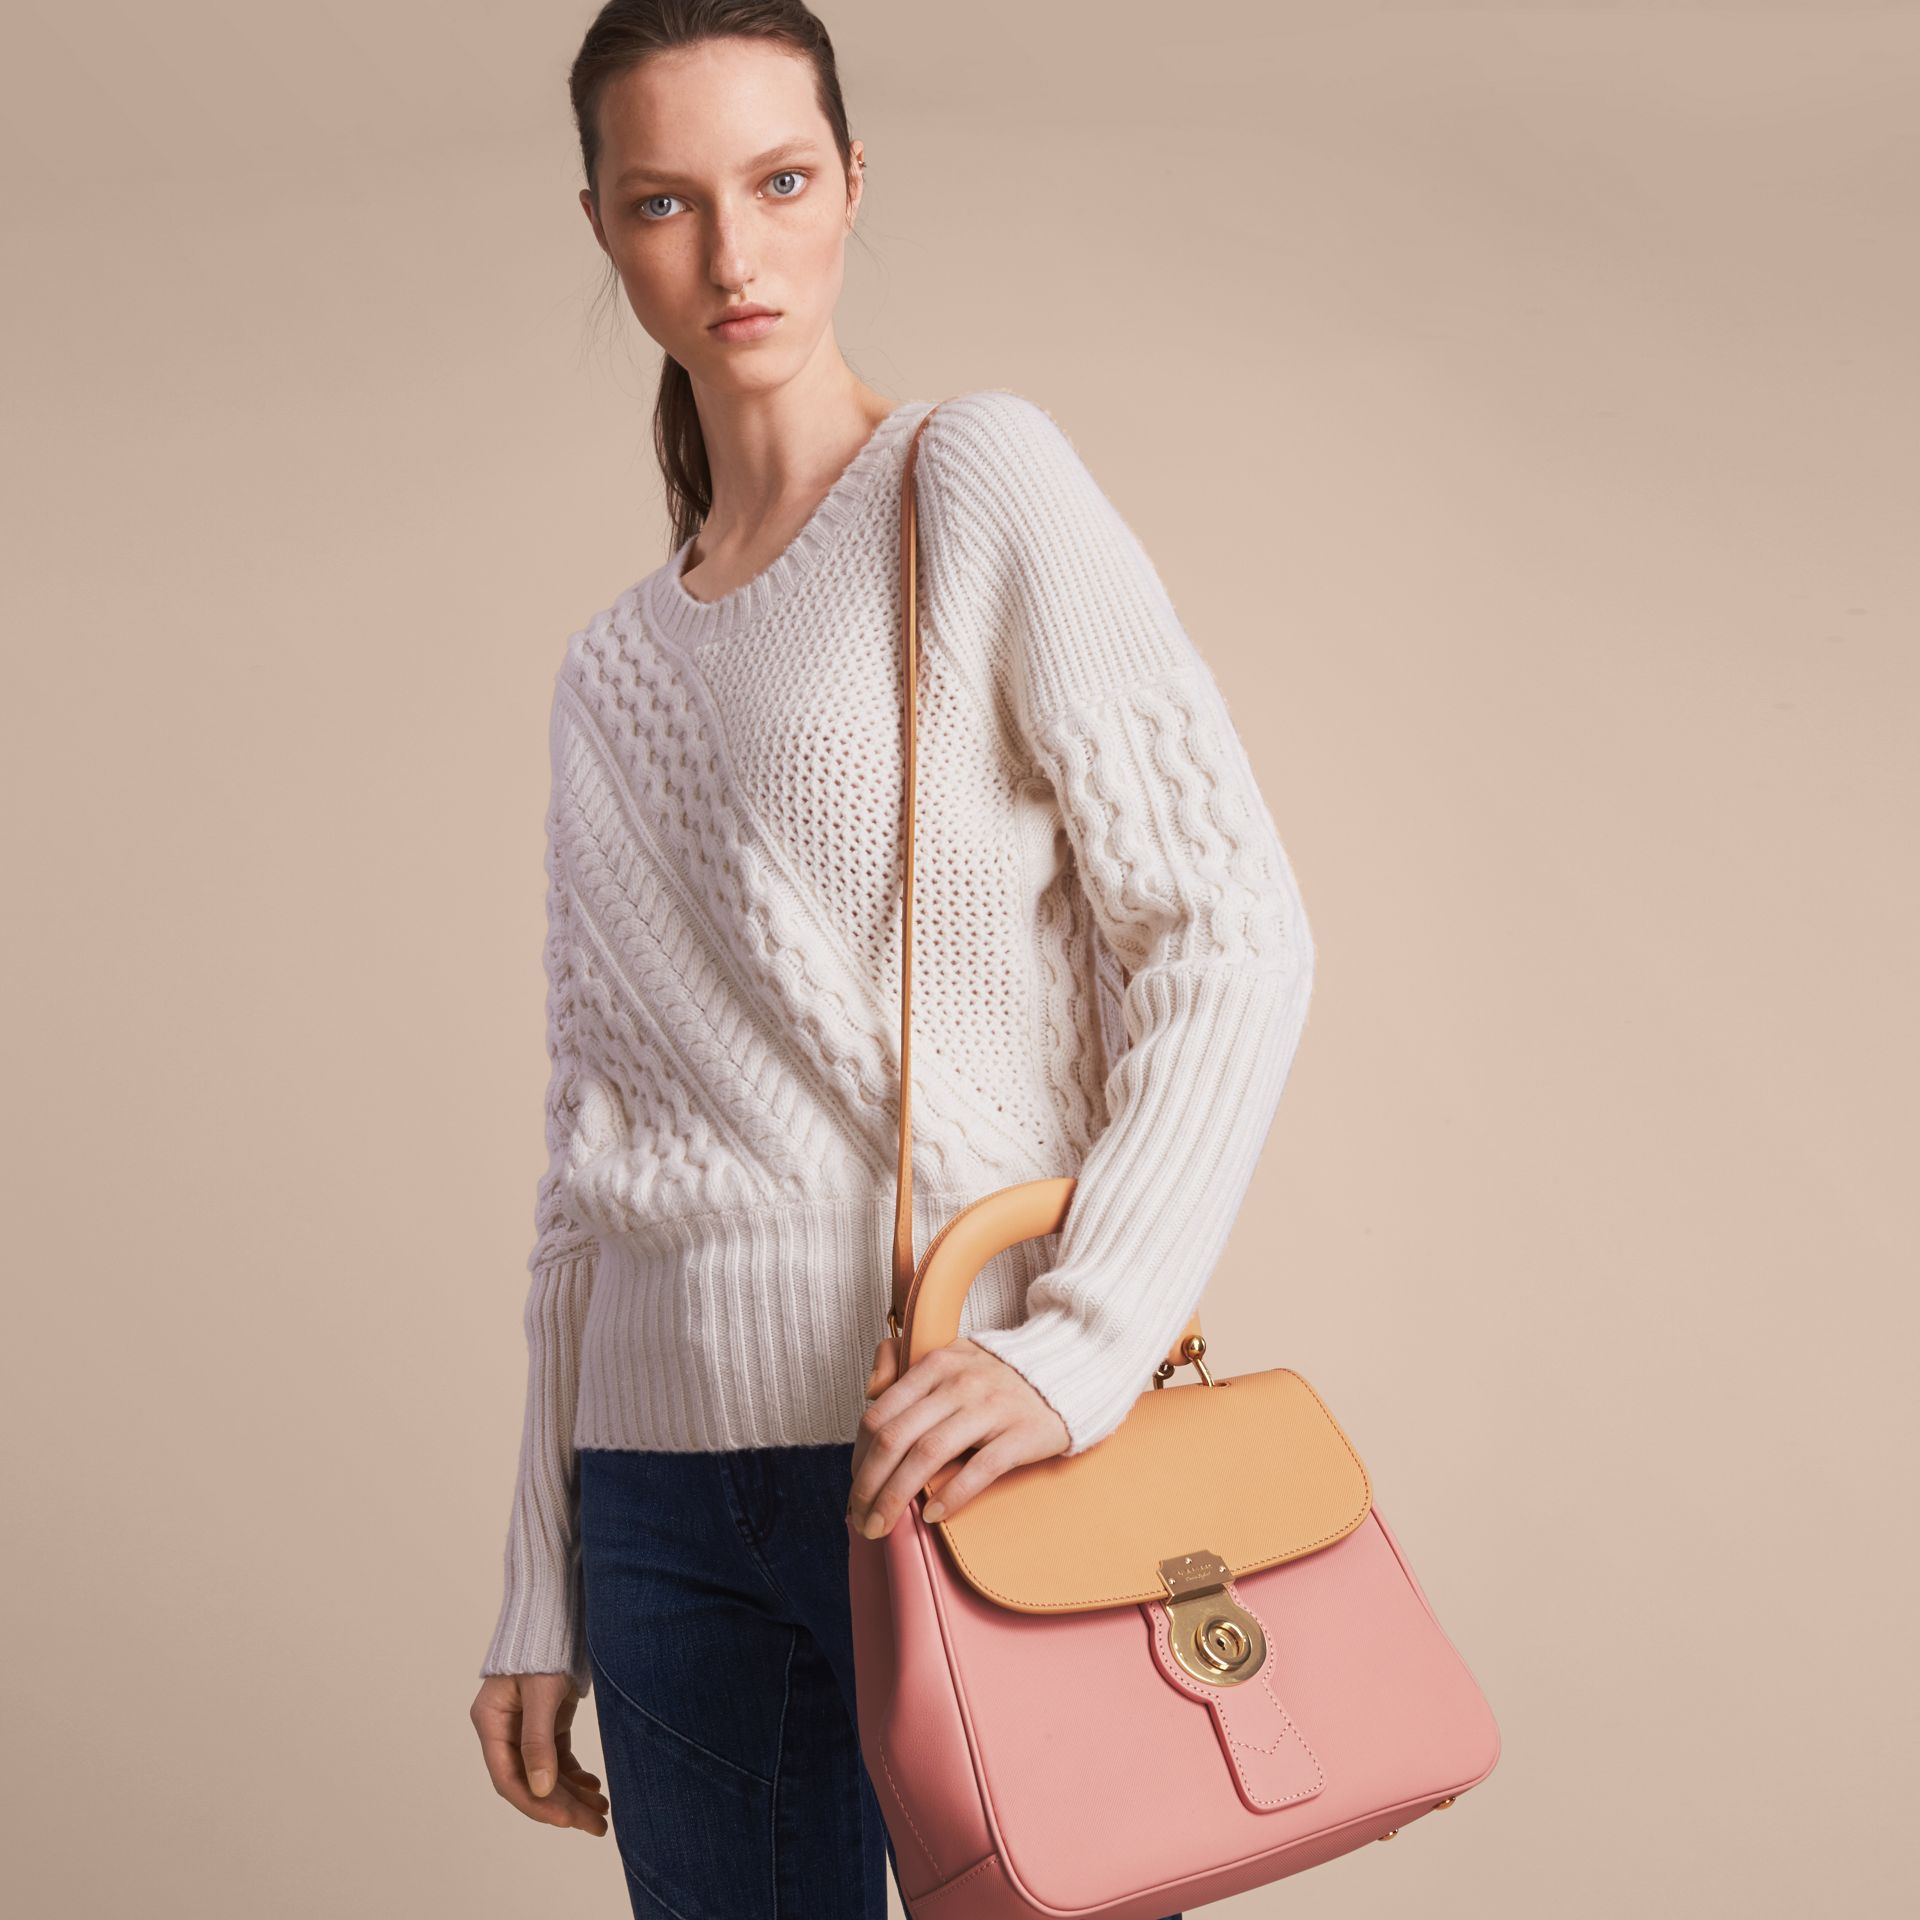 The Medium DK88 Top Handle Bag in Ash Rose/pale Clementine - Women | Burberry United Kingdom - gallery image 7